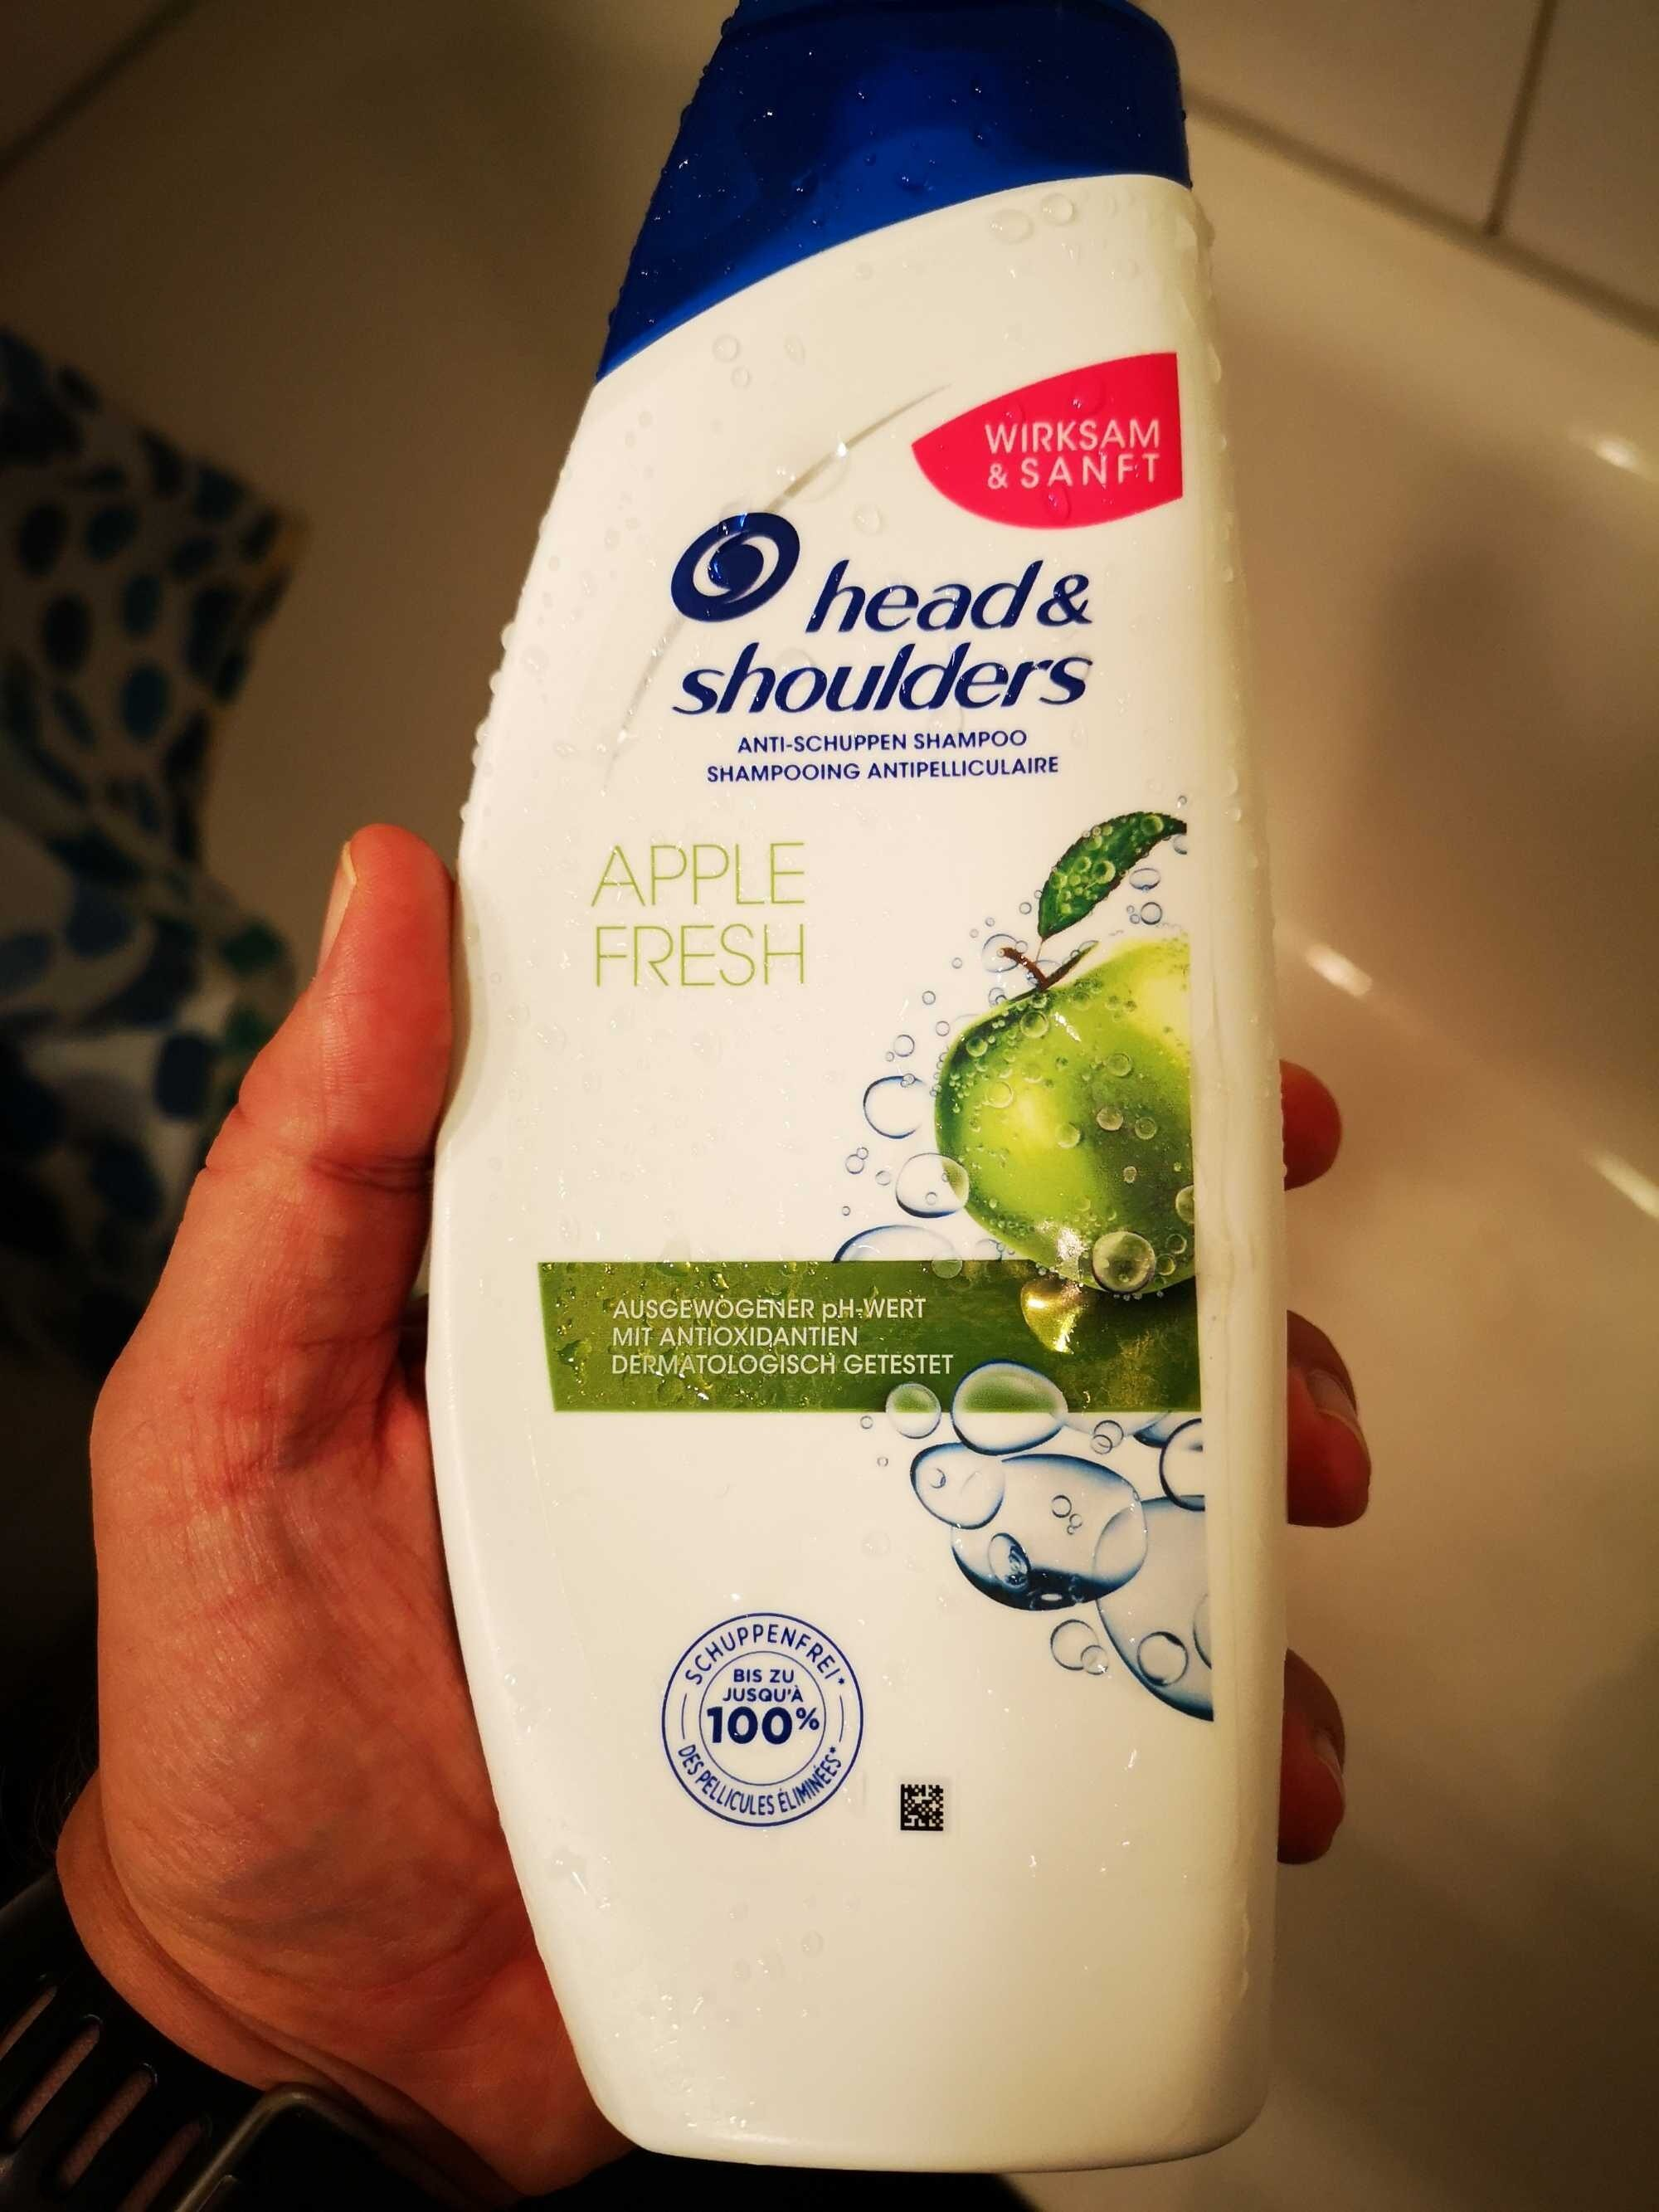 Anti-Schuppen Shampoo apple fresh - Product - de